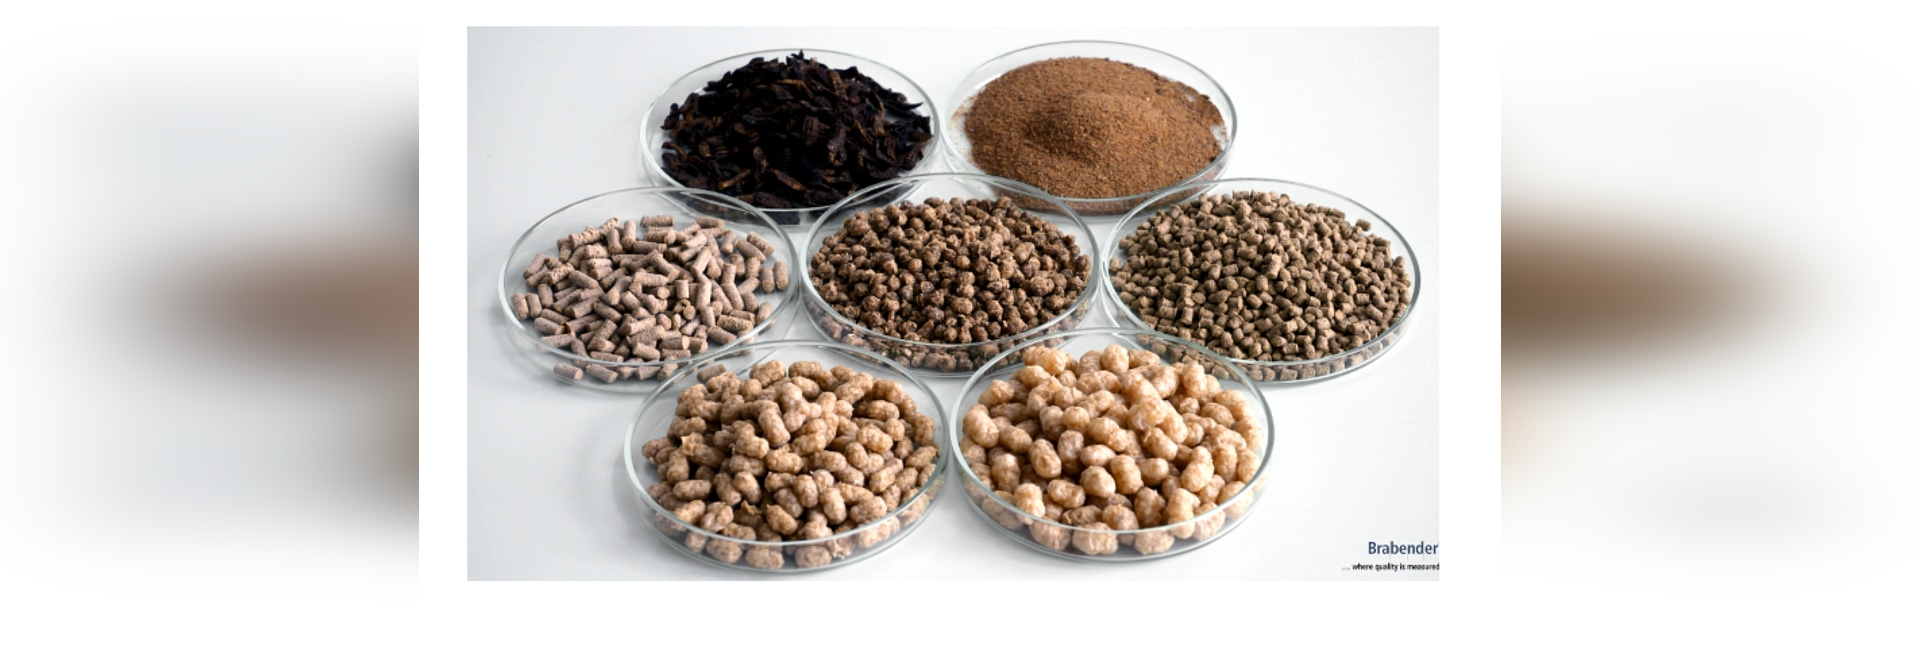 Whether floating, suspended, or slowly sinking: With the TwinLab-F 20/40 it is possible to test aquafeed produced from various raw materials (such as insect protein, see upper row) on a laboratory ...